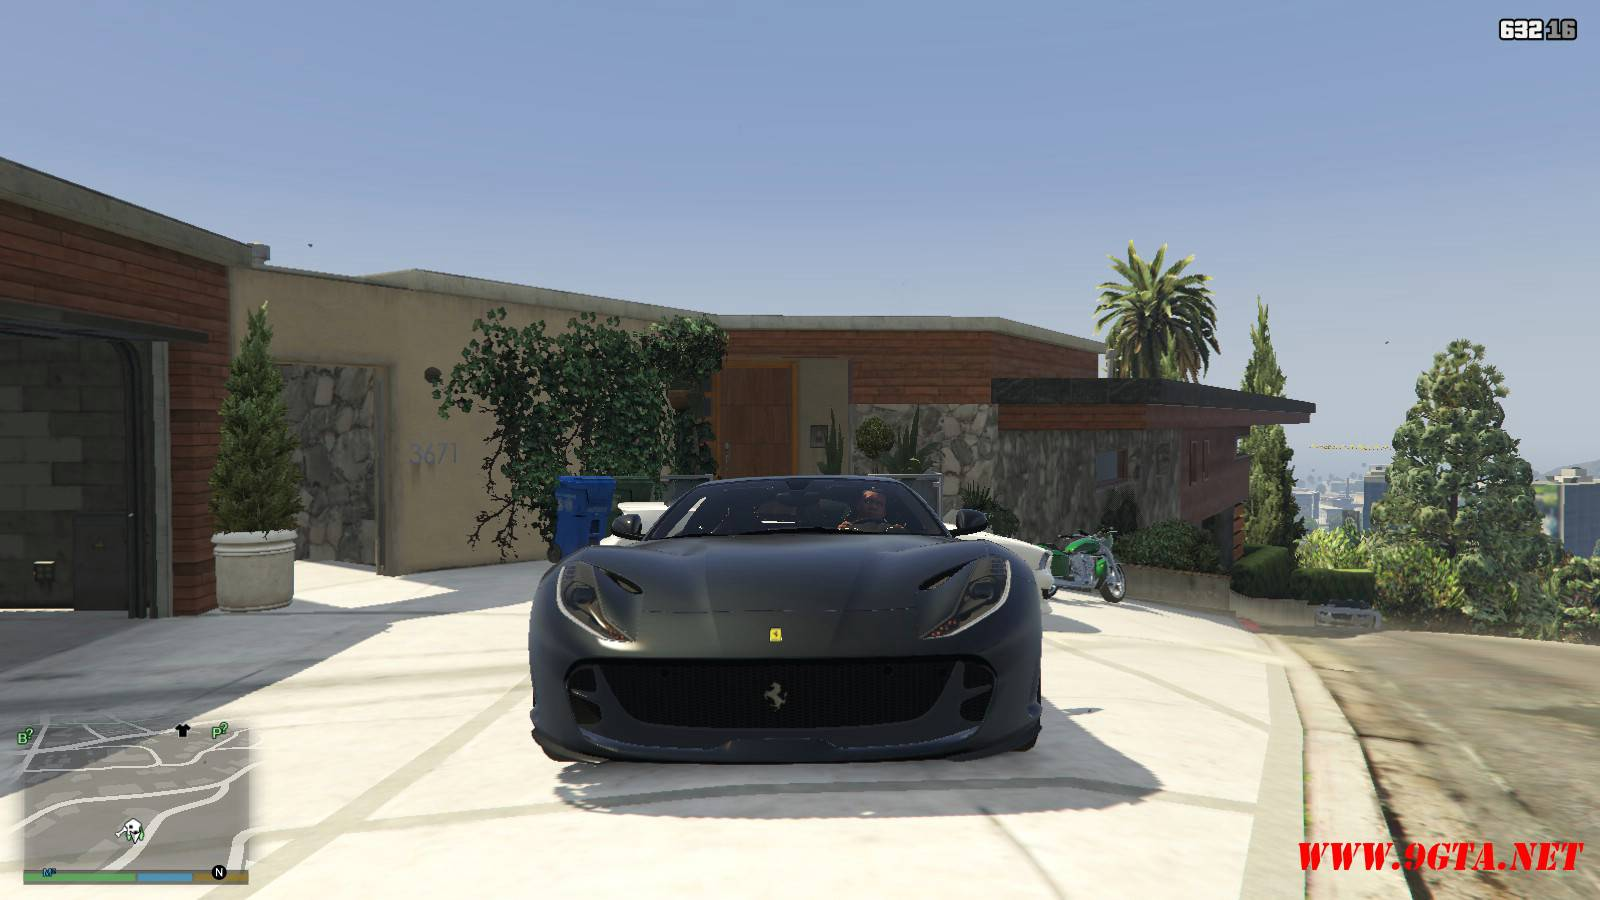 2018 Ferrari 812 Superfast Mod For GTA5 (9)